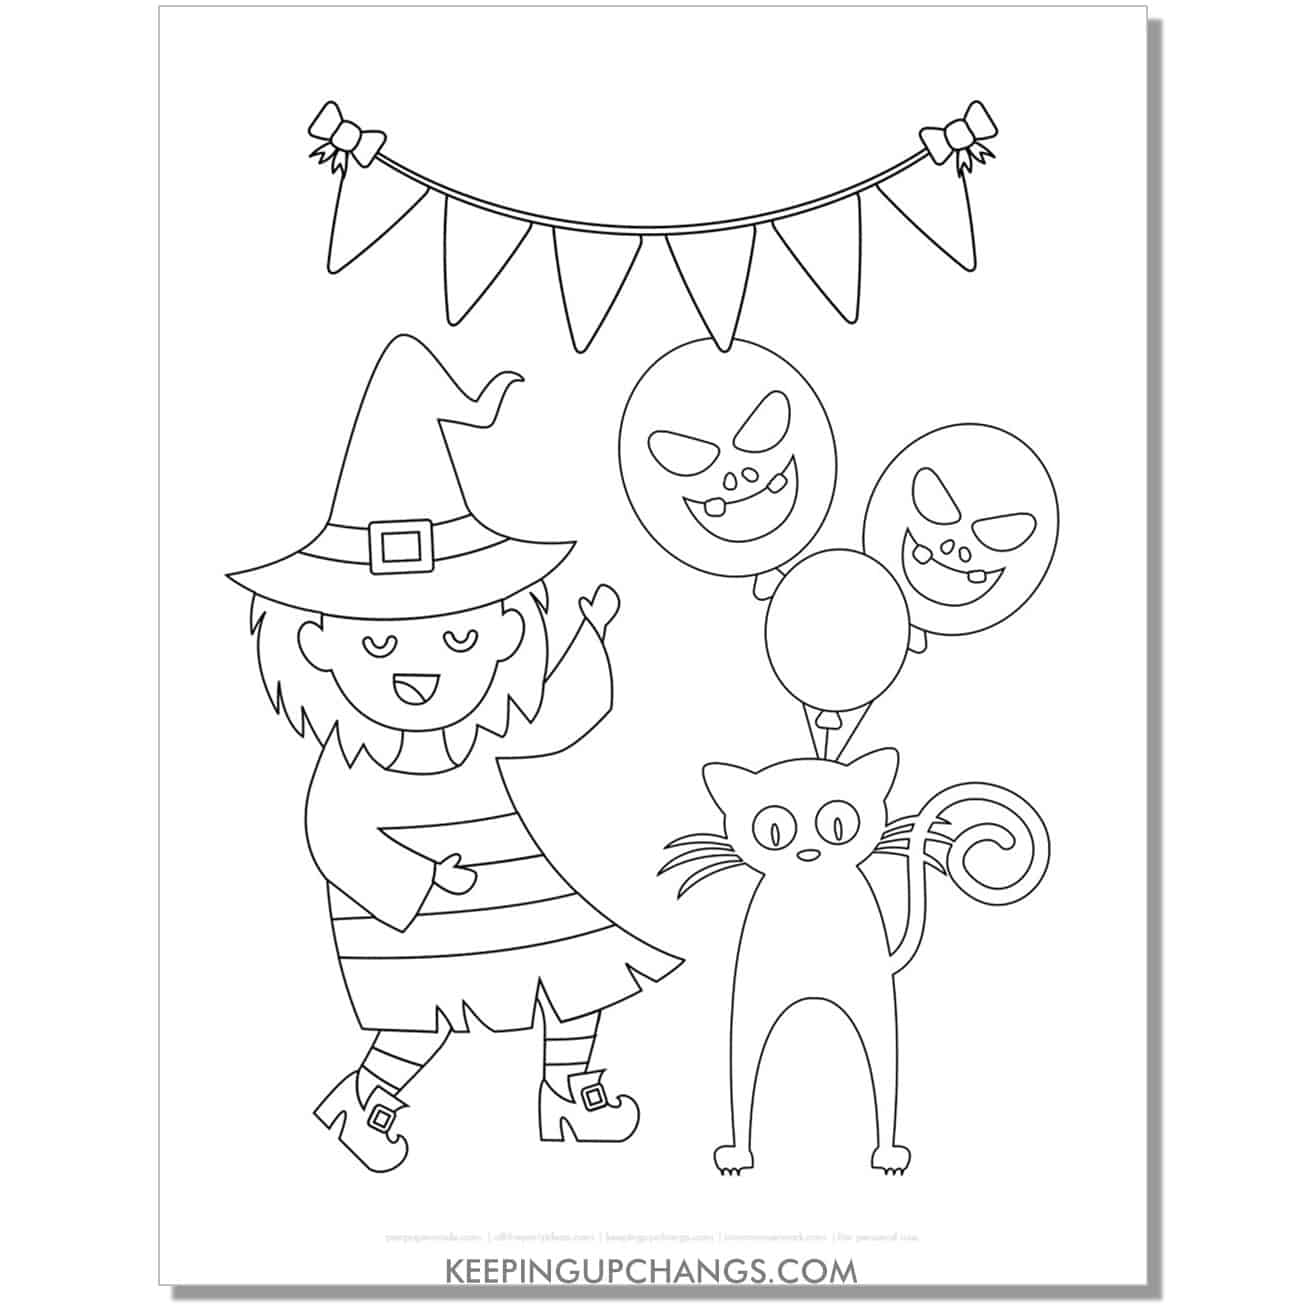 free young witch dancing with black cat and balloons coloring page.